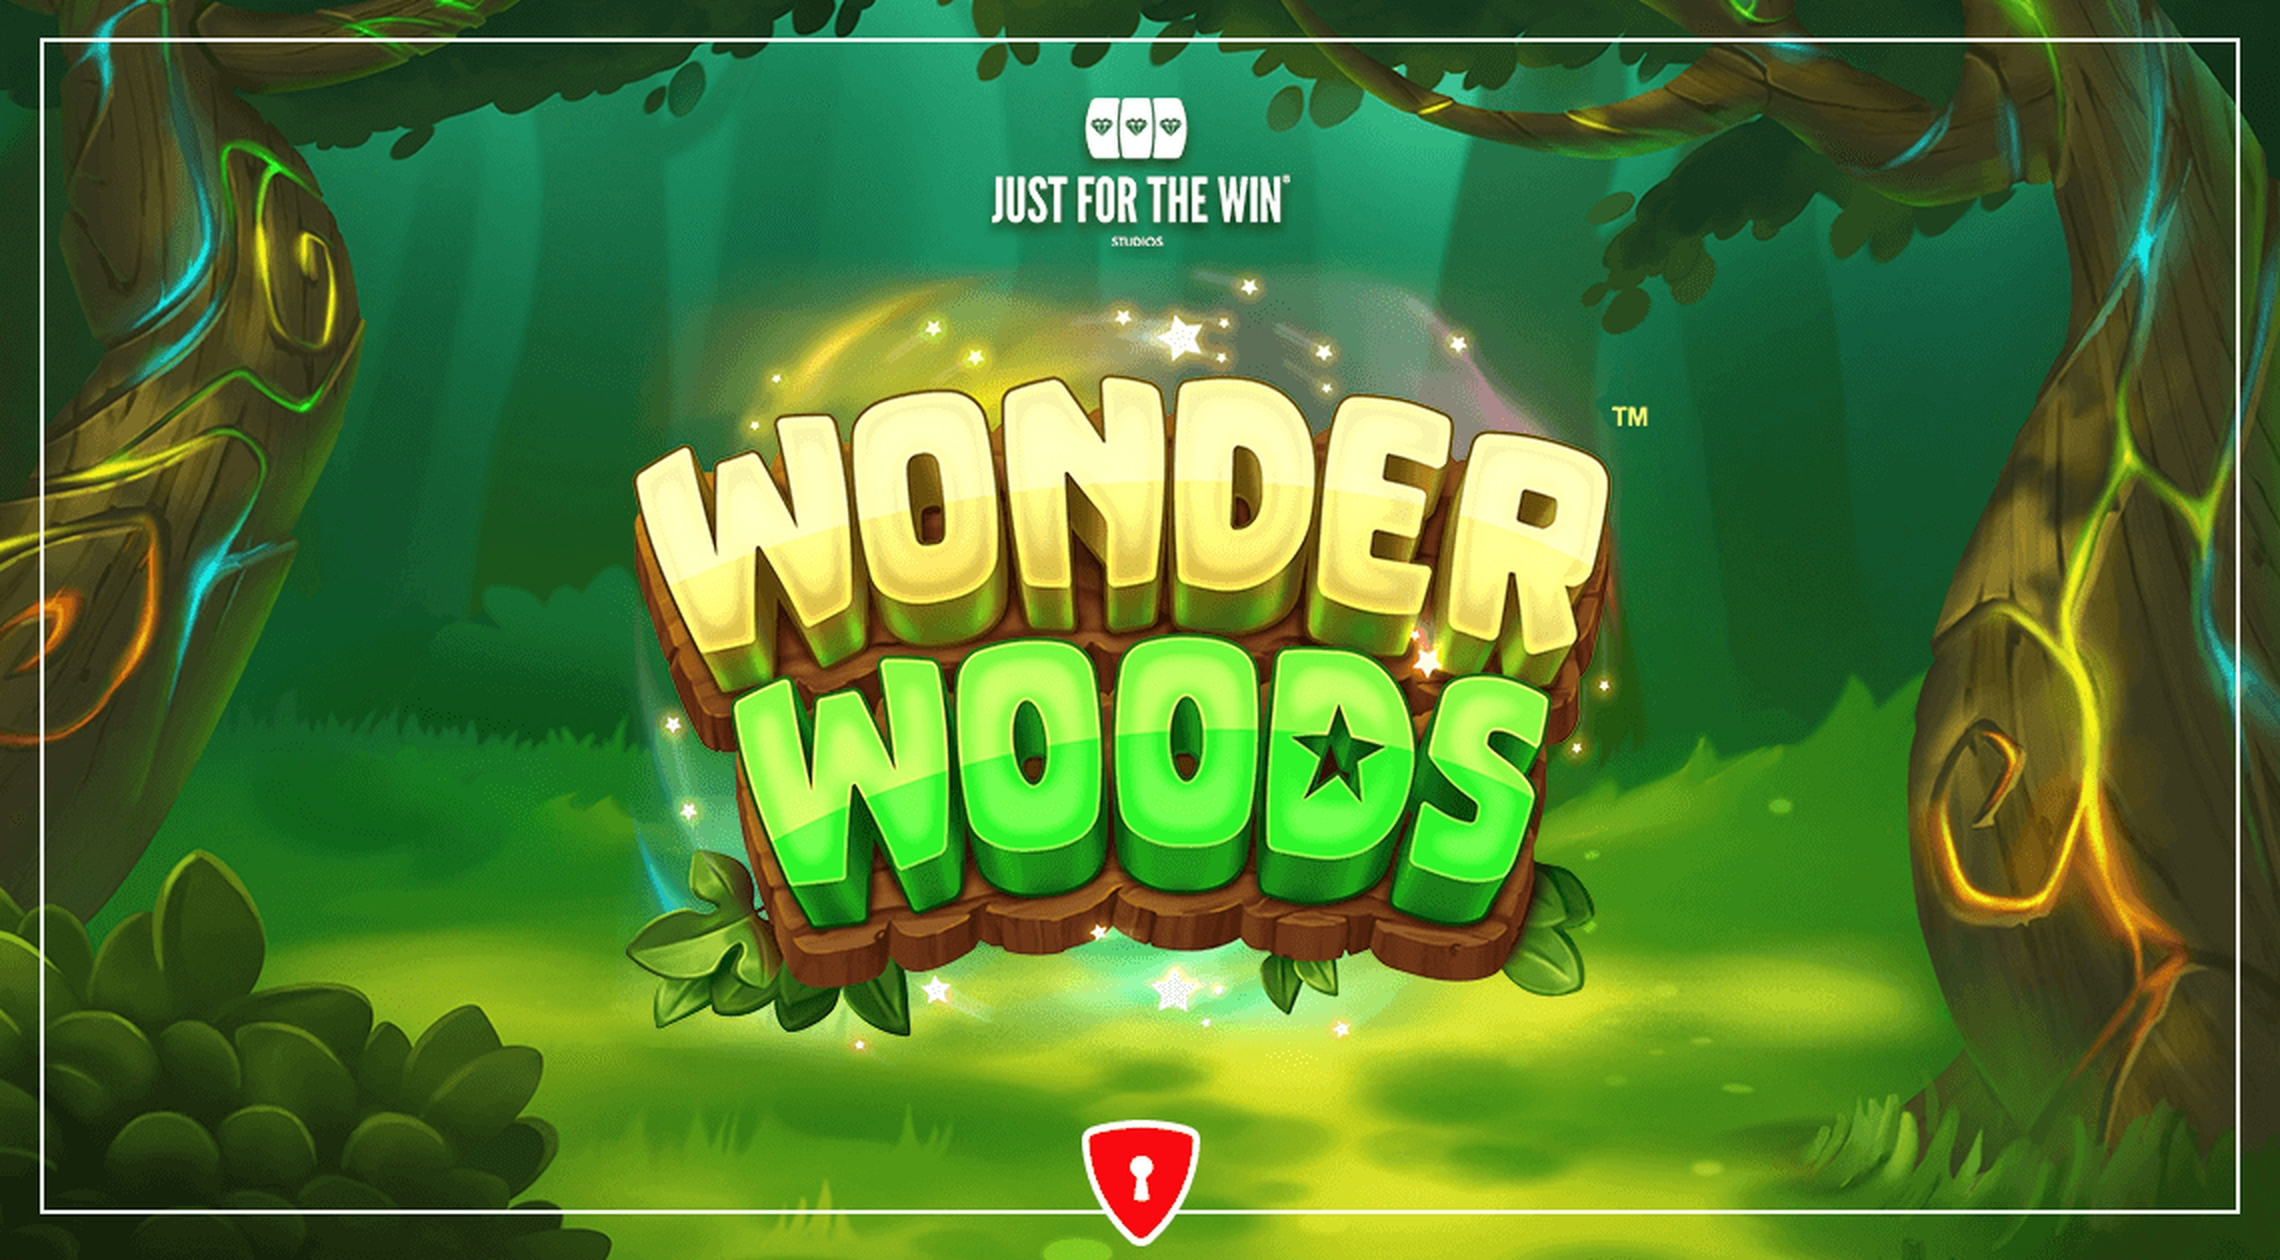 Win Money in Wonder Woods Free Slot Game by Just For The Win